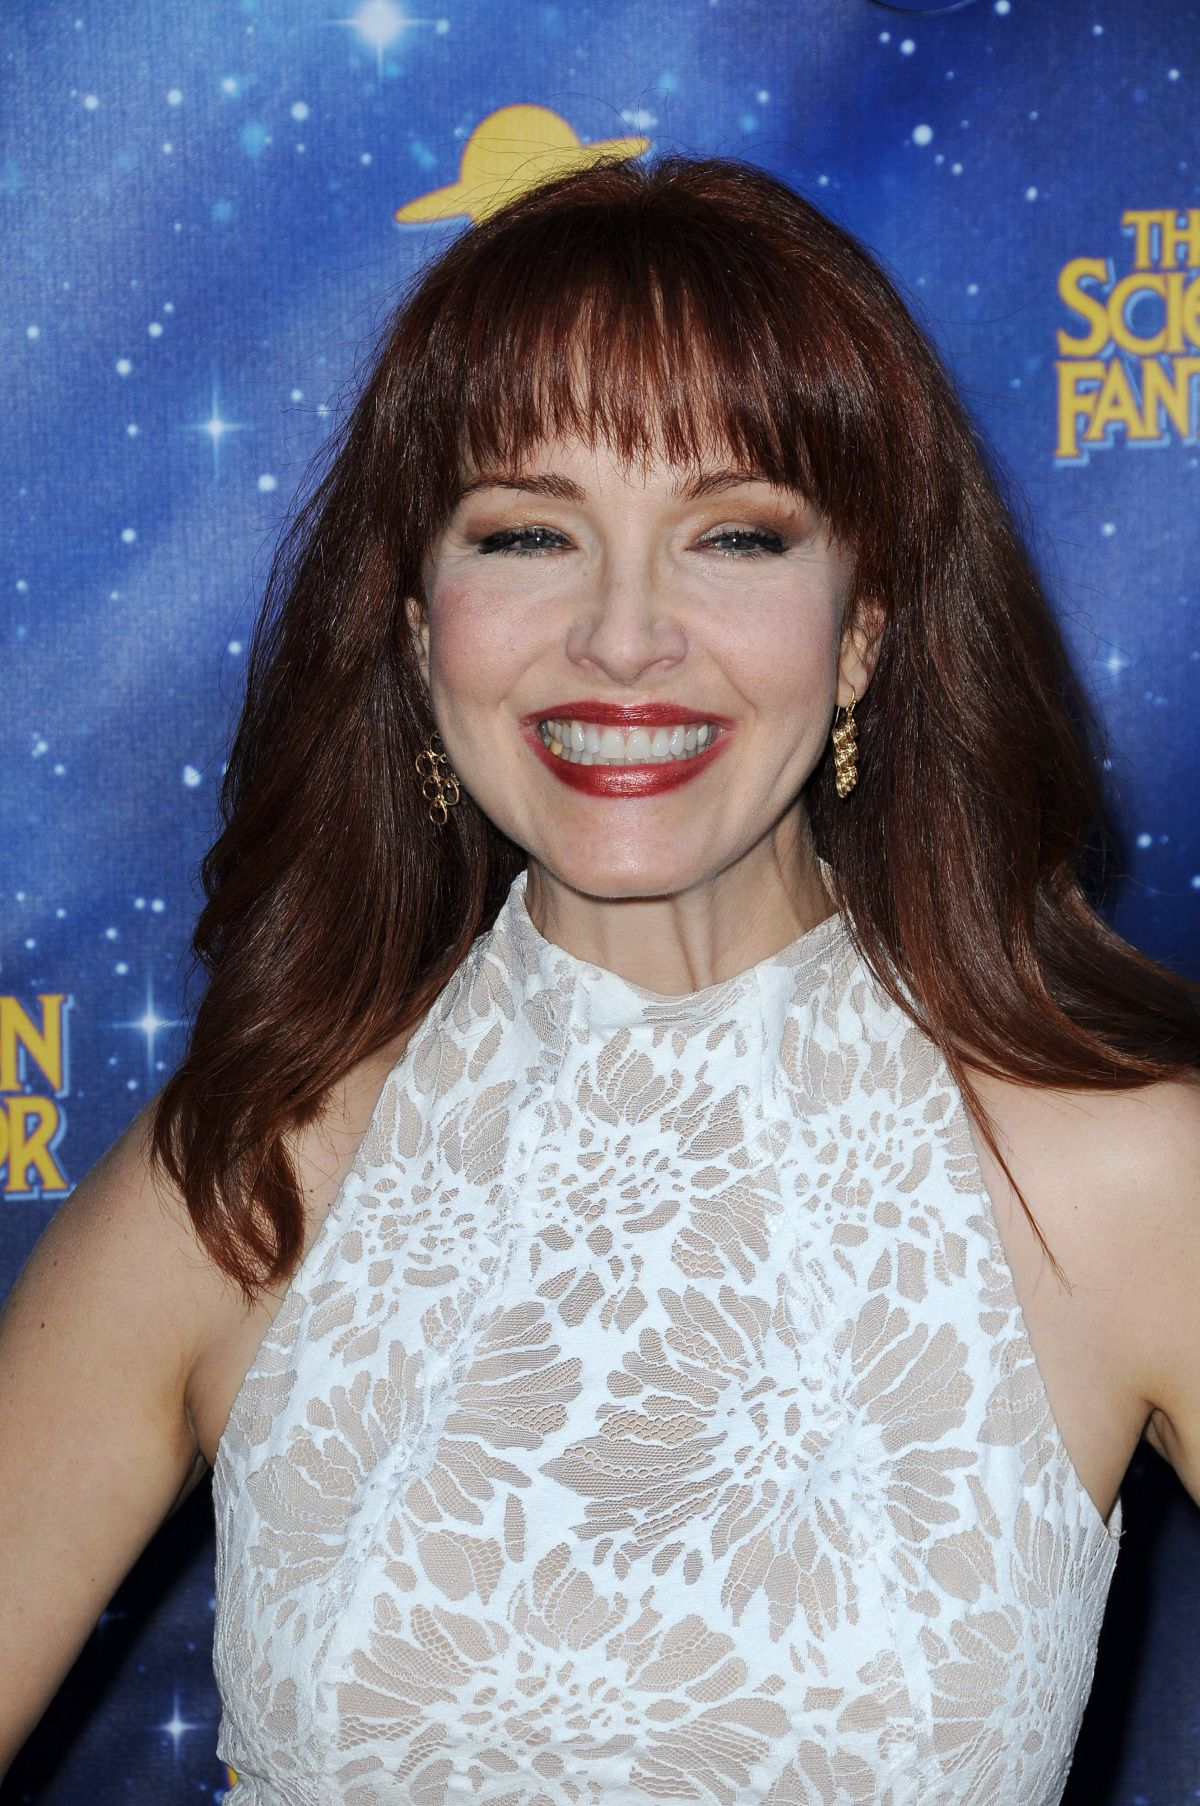 AMY YASBECK at 2016 Saturn Awards in Burbank 06/22/2016